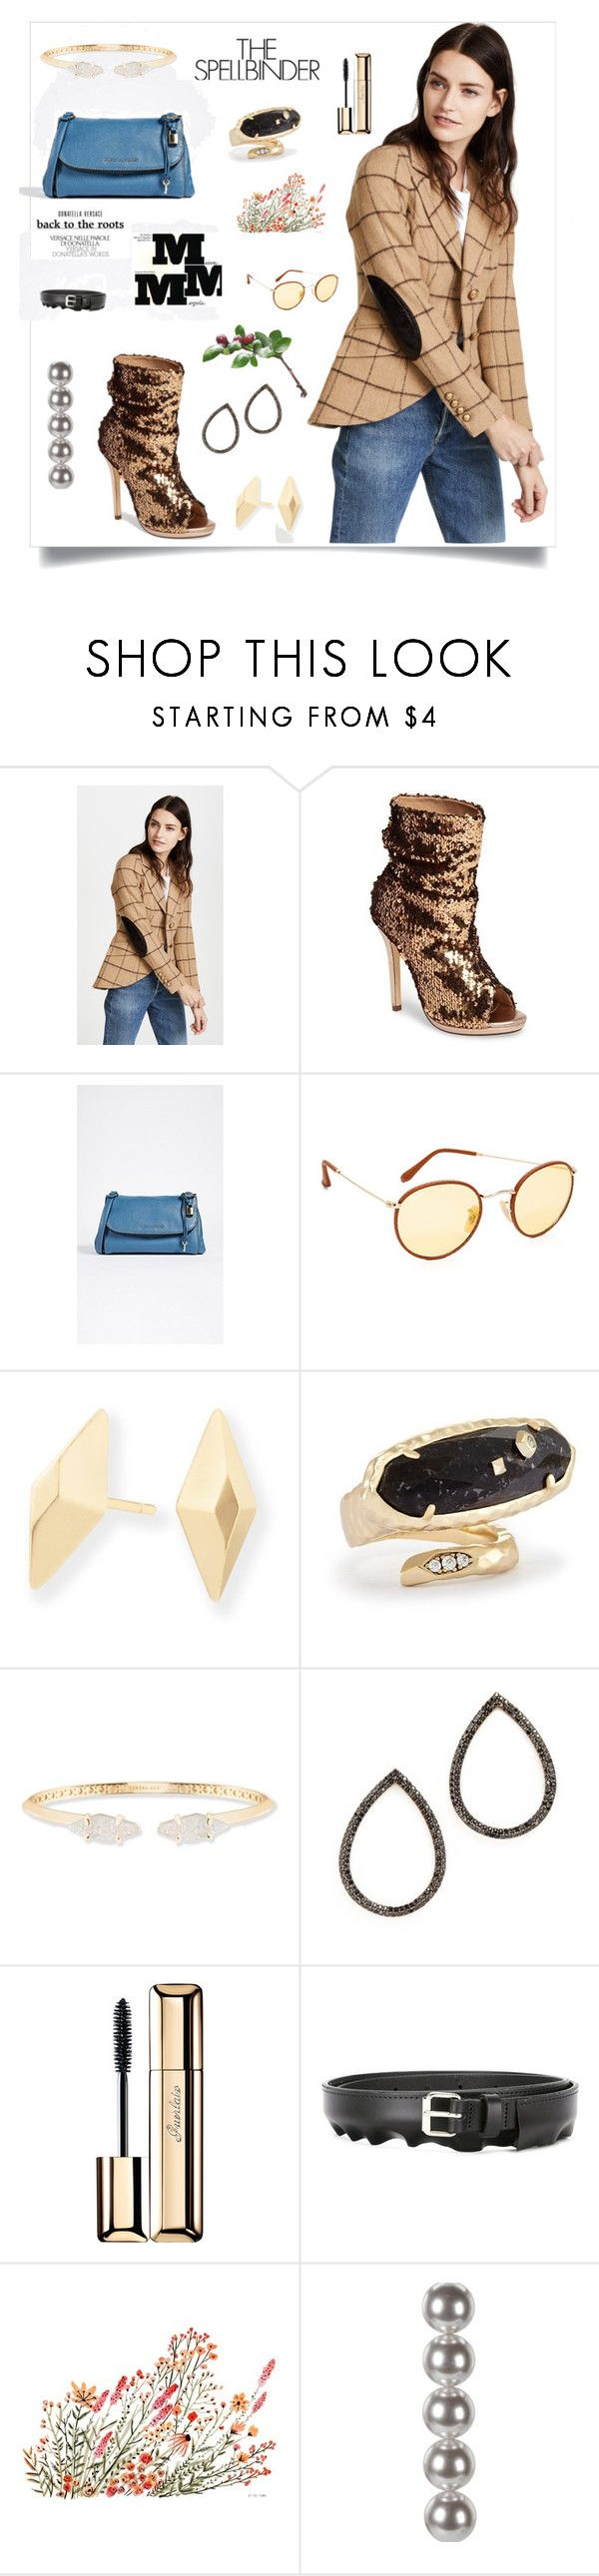 """Blazer In Camel Windowpane..**"" by yagna ❤ liked on Polyvore featuring Lauren Lorraine, Marc Jacobs, Ray-Ban, Kendra Scott, Maison Margiela, MAHA LOZI, Guerlain, Peter Jensen, Gwyneth Shoes and Vikki Chu"